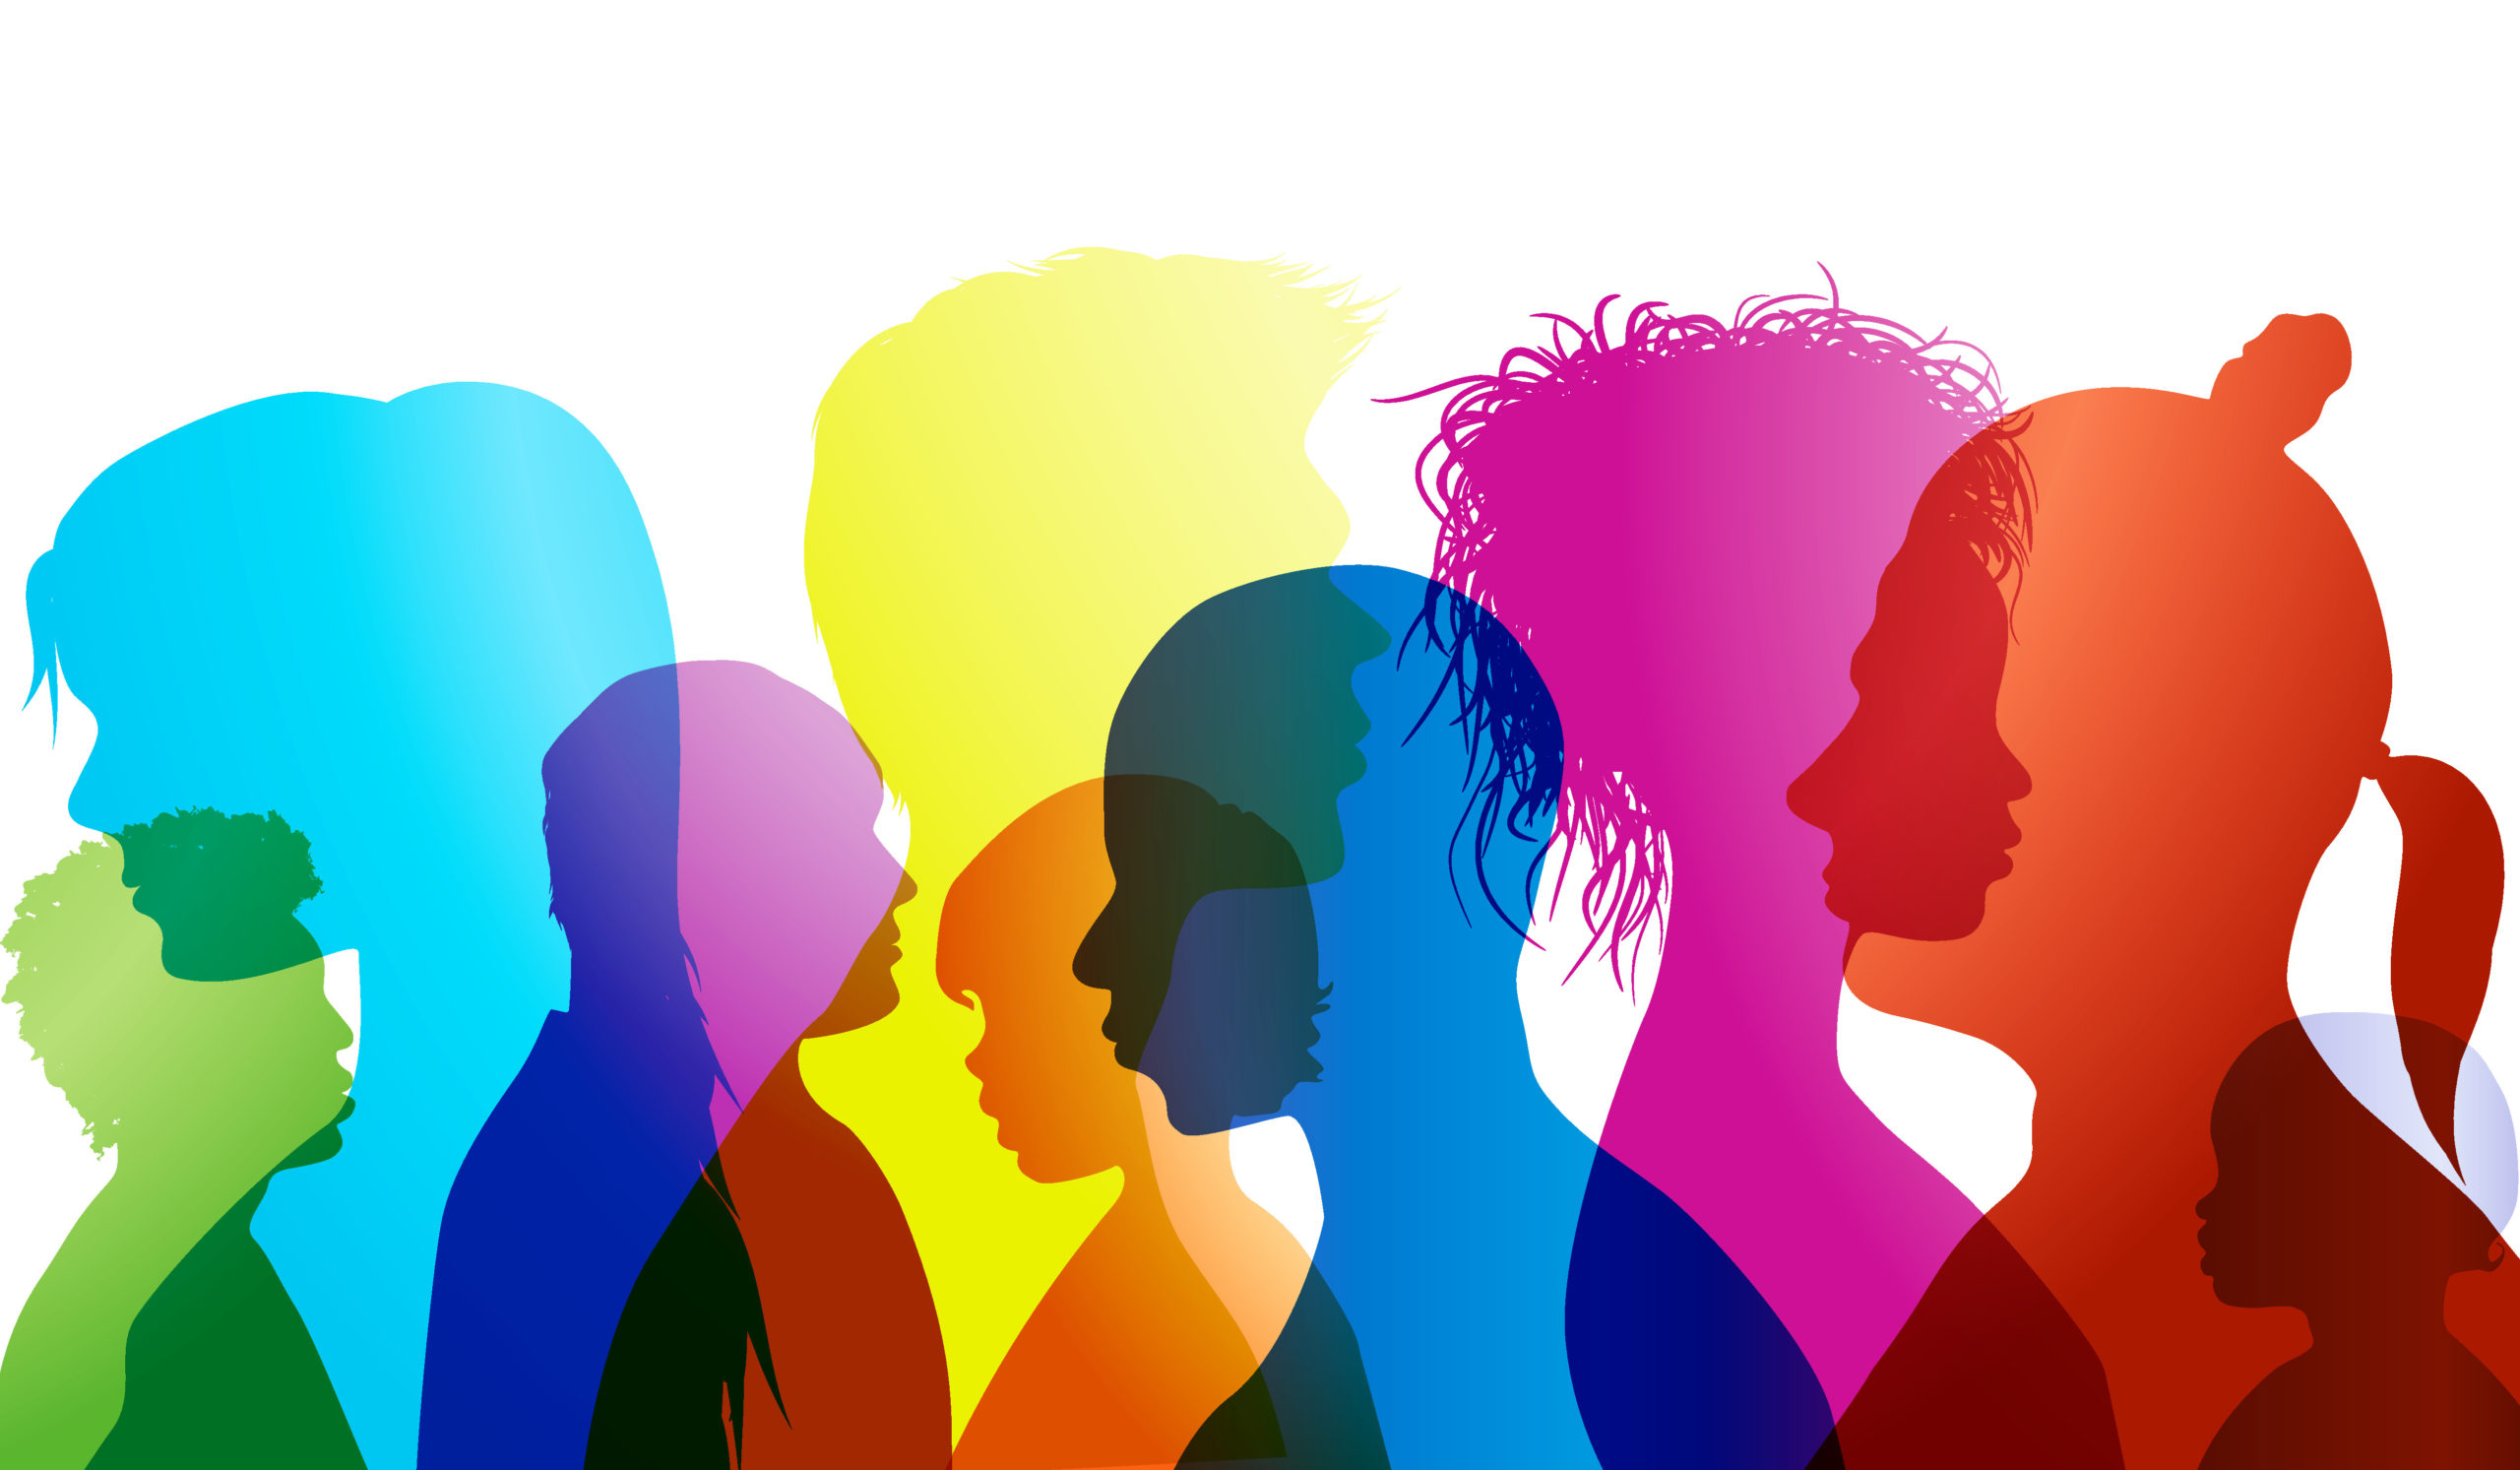 3 Ways Ending Bias Would Benefit Everyone_colorful layered silhouettes of different people